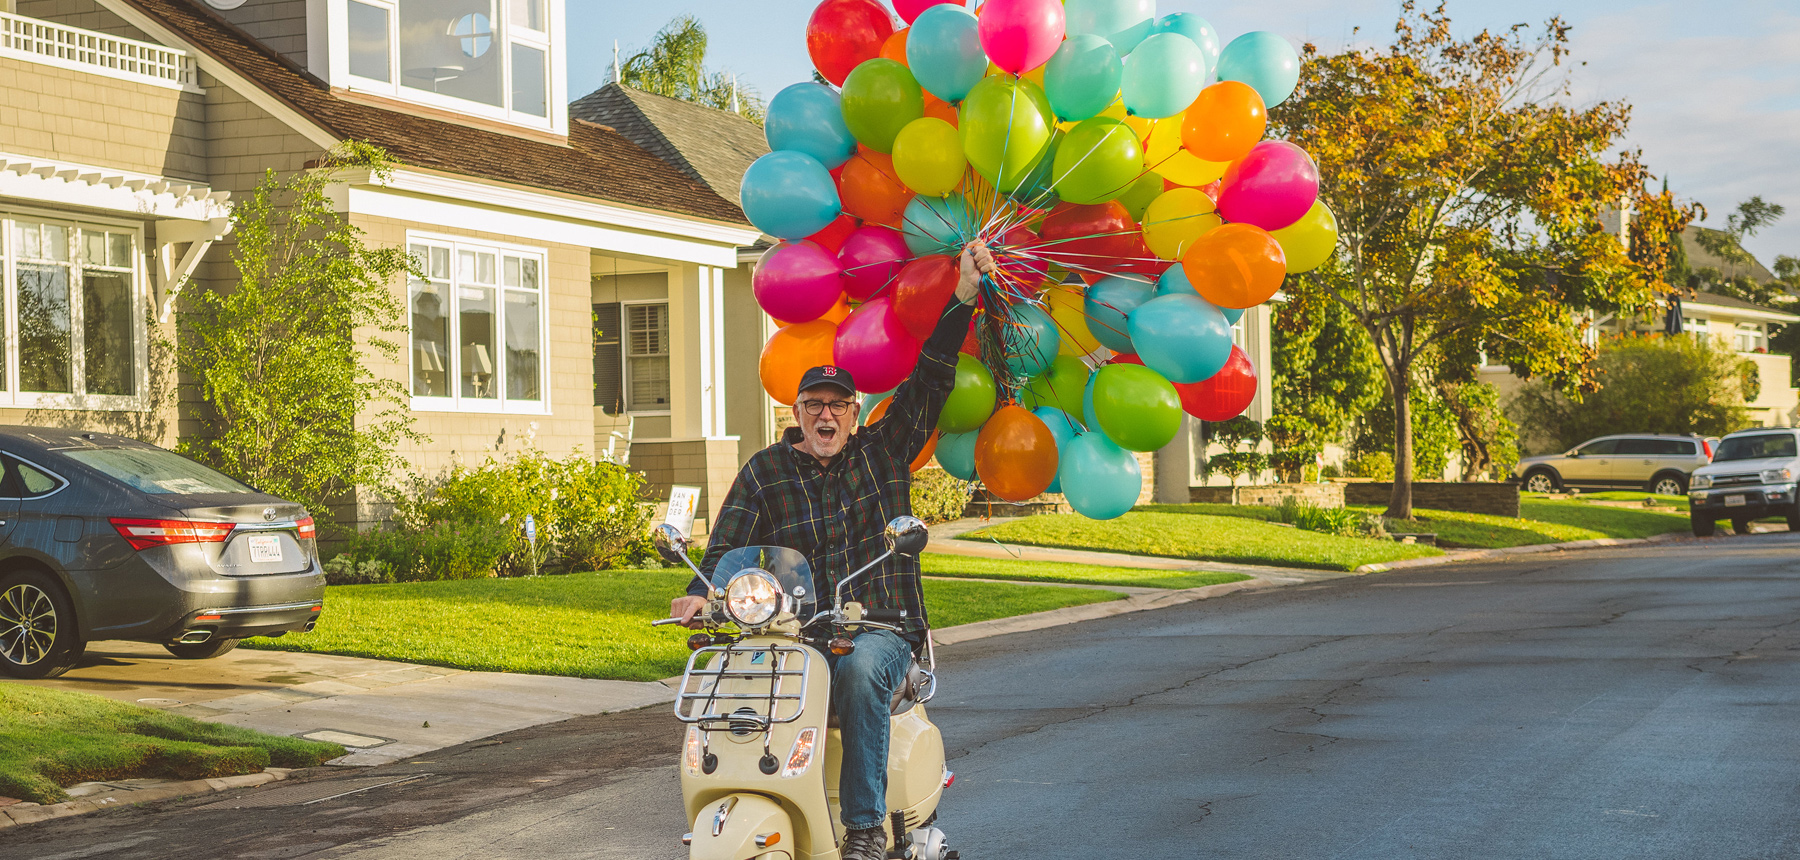 Bob Goff on Scooter with Balloons